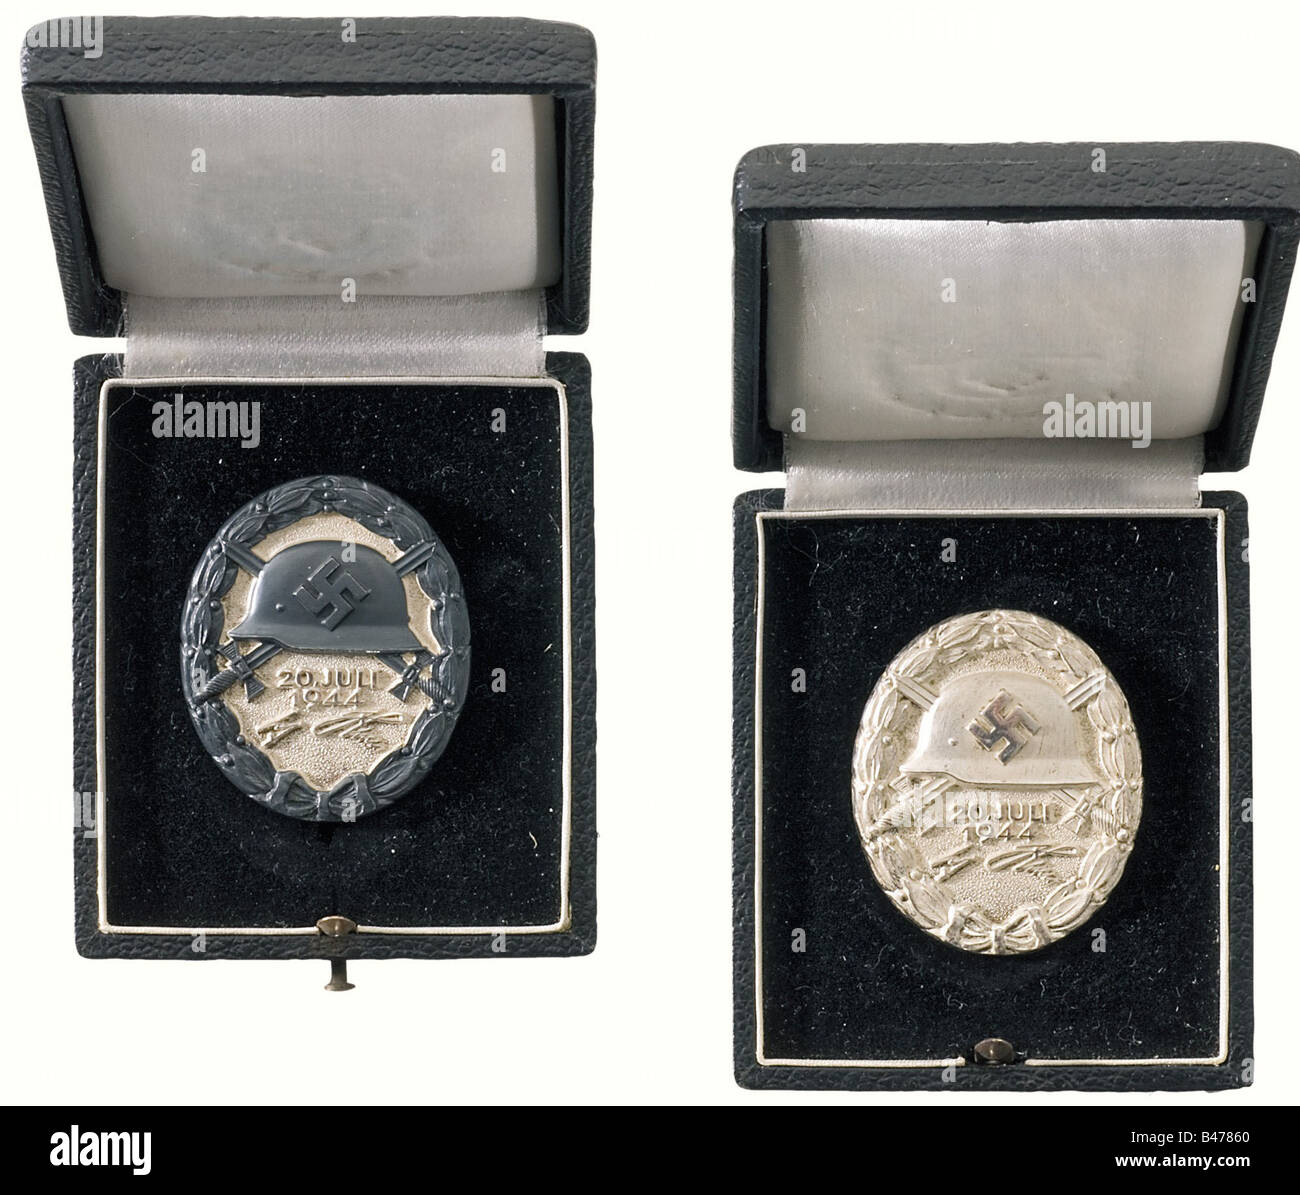 A Wound Badge 20 July, 1944 in Black., In original presentation case. Silver, with areas of patination. Reverse Stock Photo